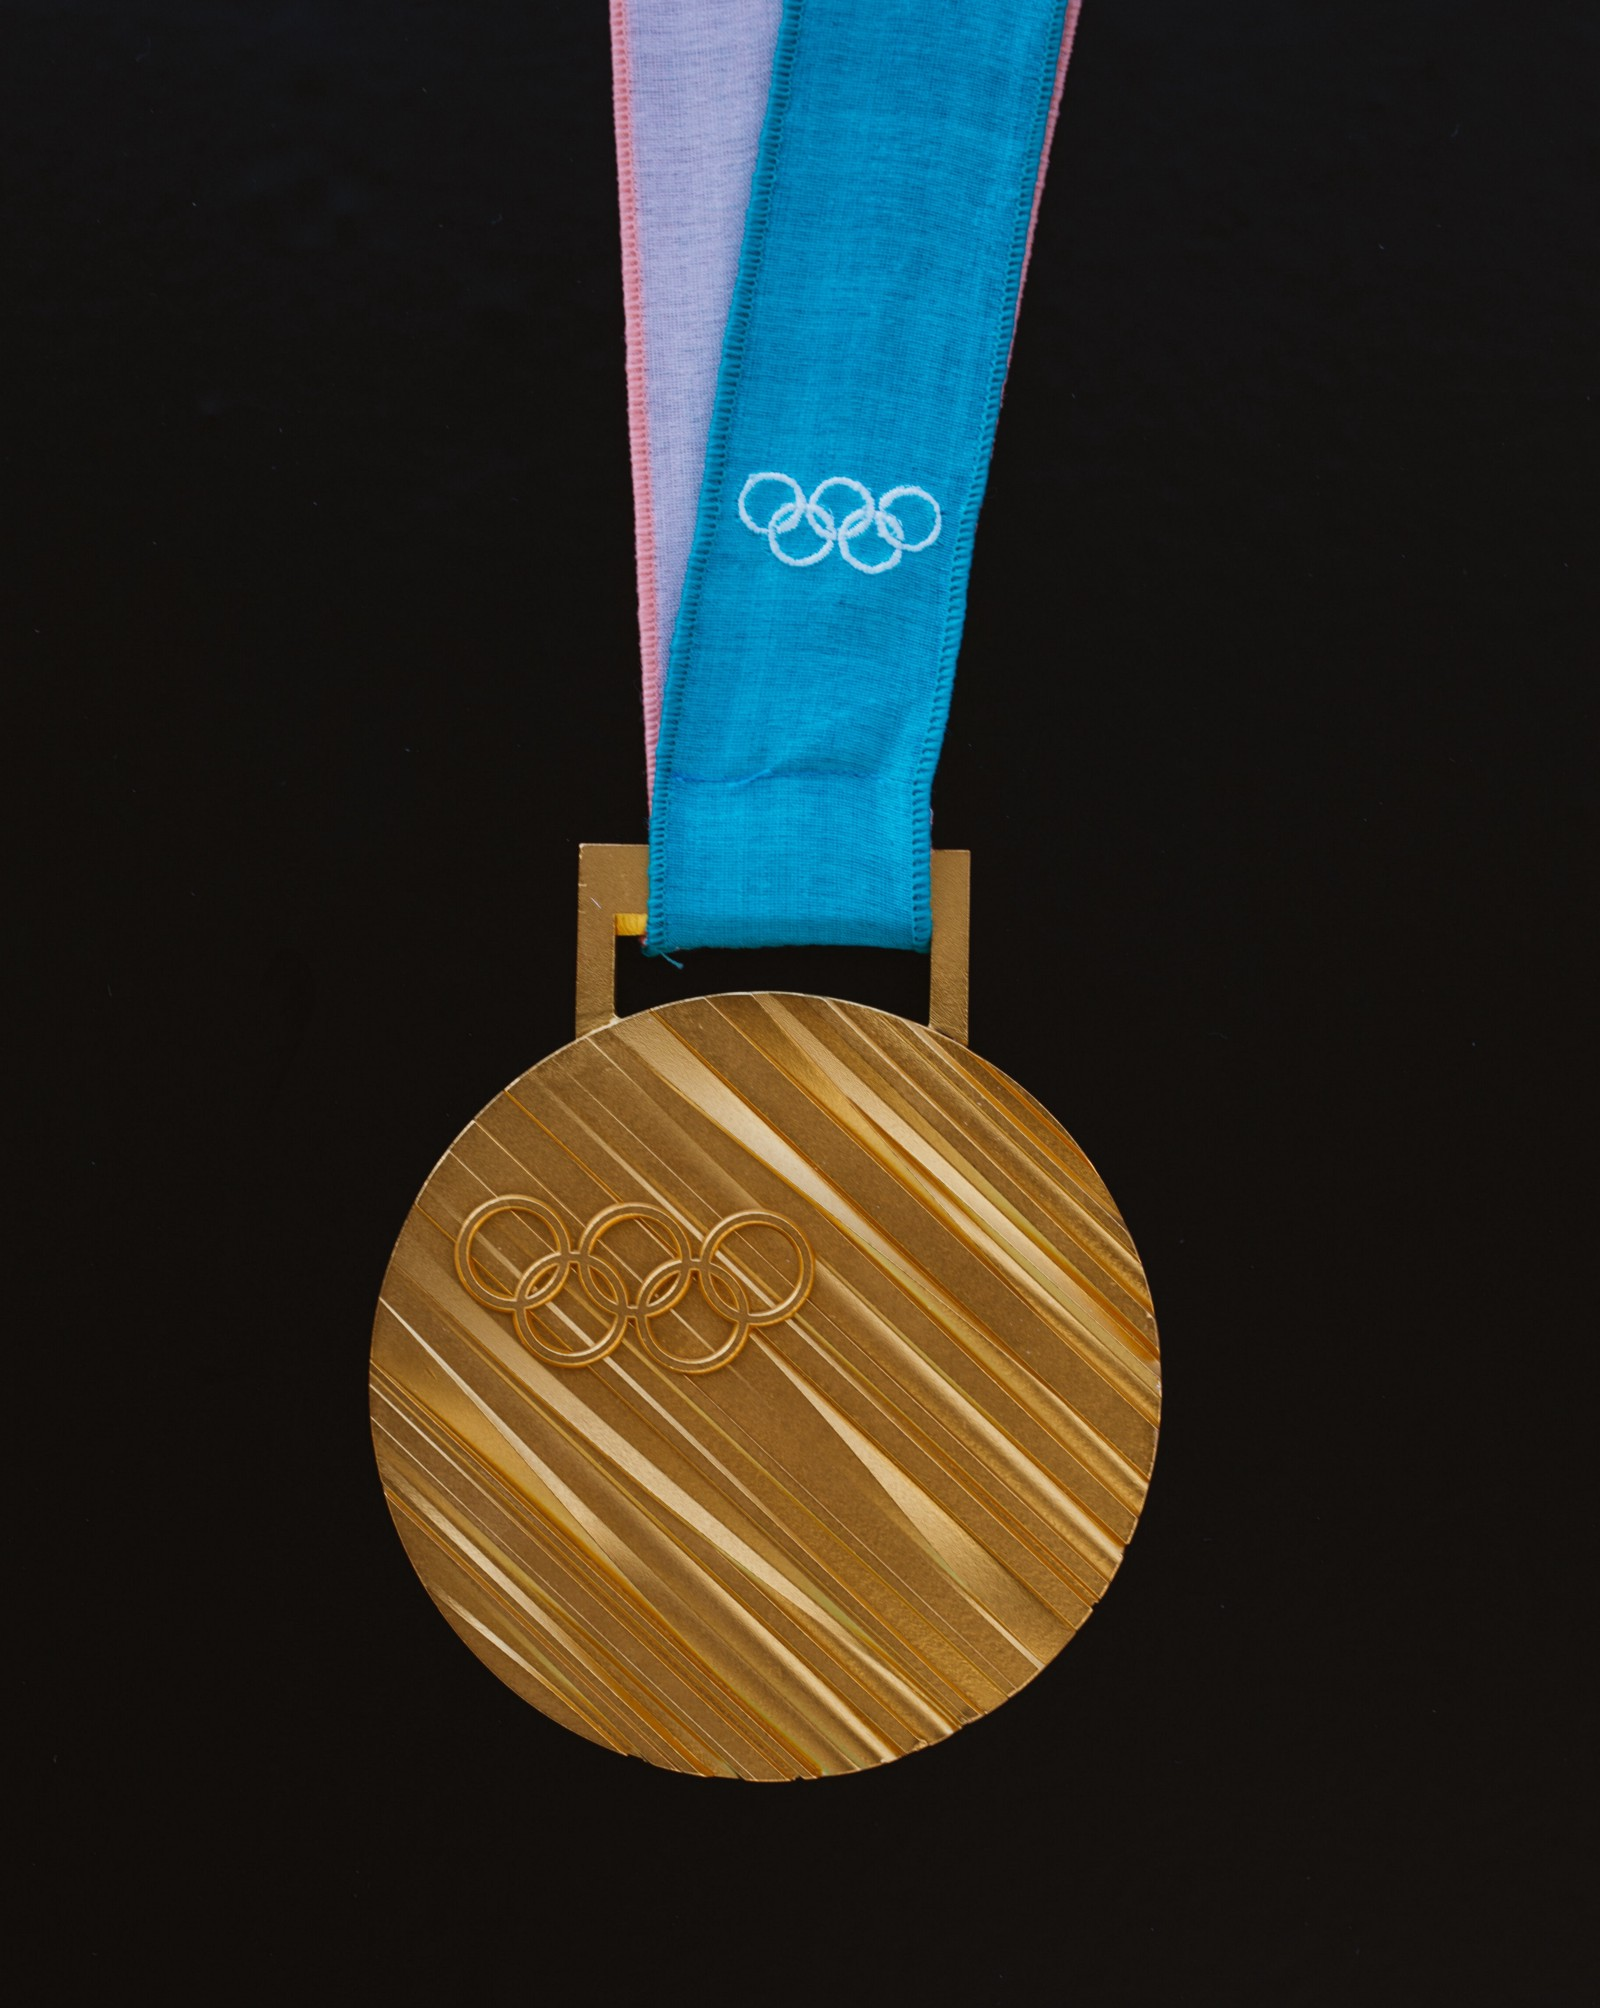 Who Gets the Gold Medal for Sexism? – P.S. I Love You